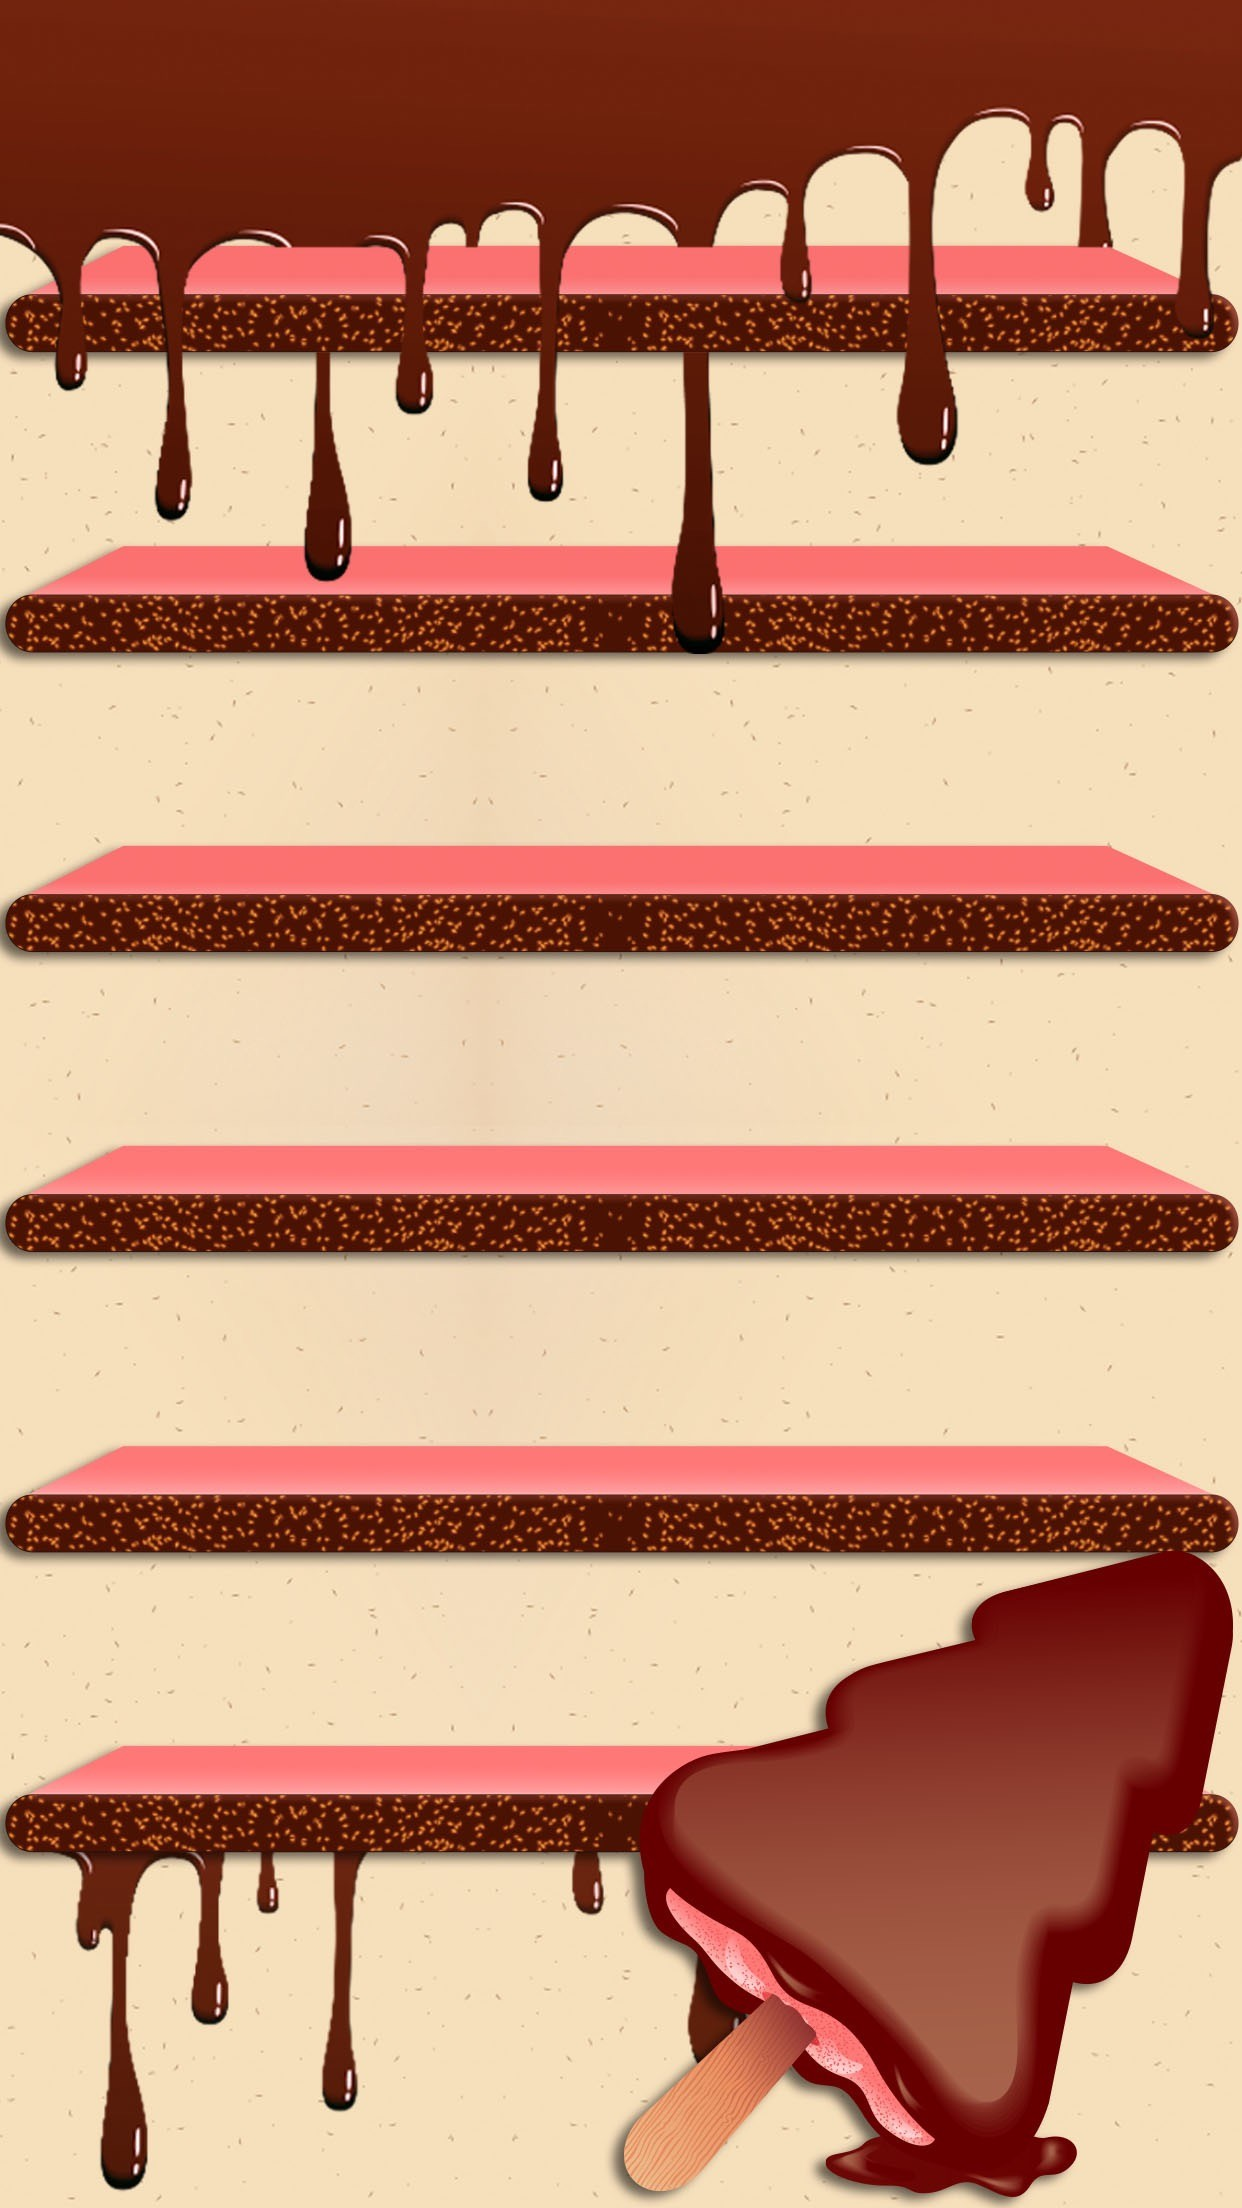 1242x2208 iPhone wallpaper. ↑↑TAP AND GET THE FREE APP! Shelves Chocolate Drops Beige  Brown Tasty Ice